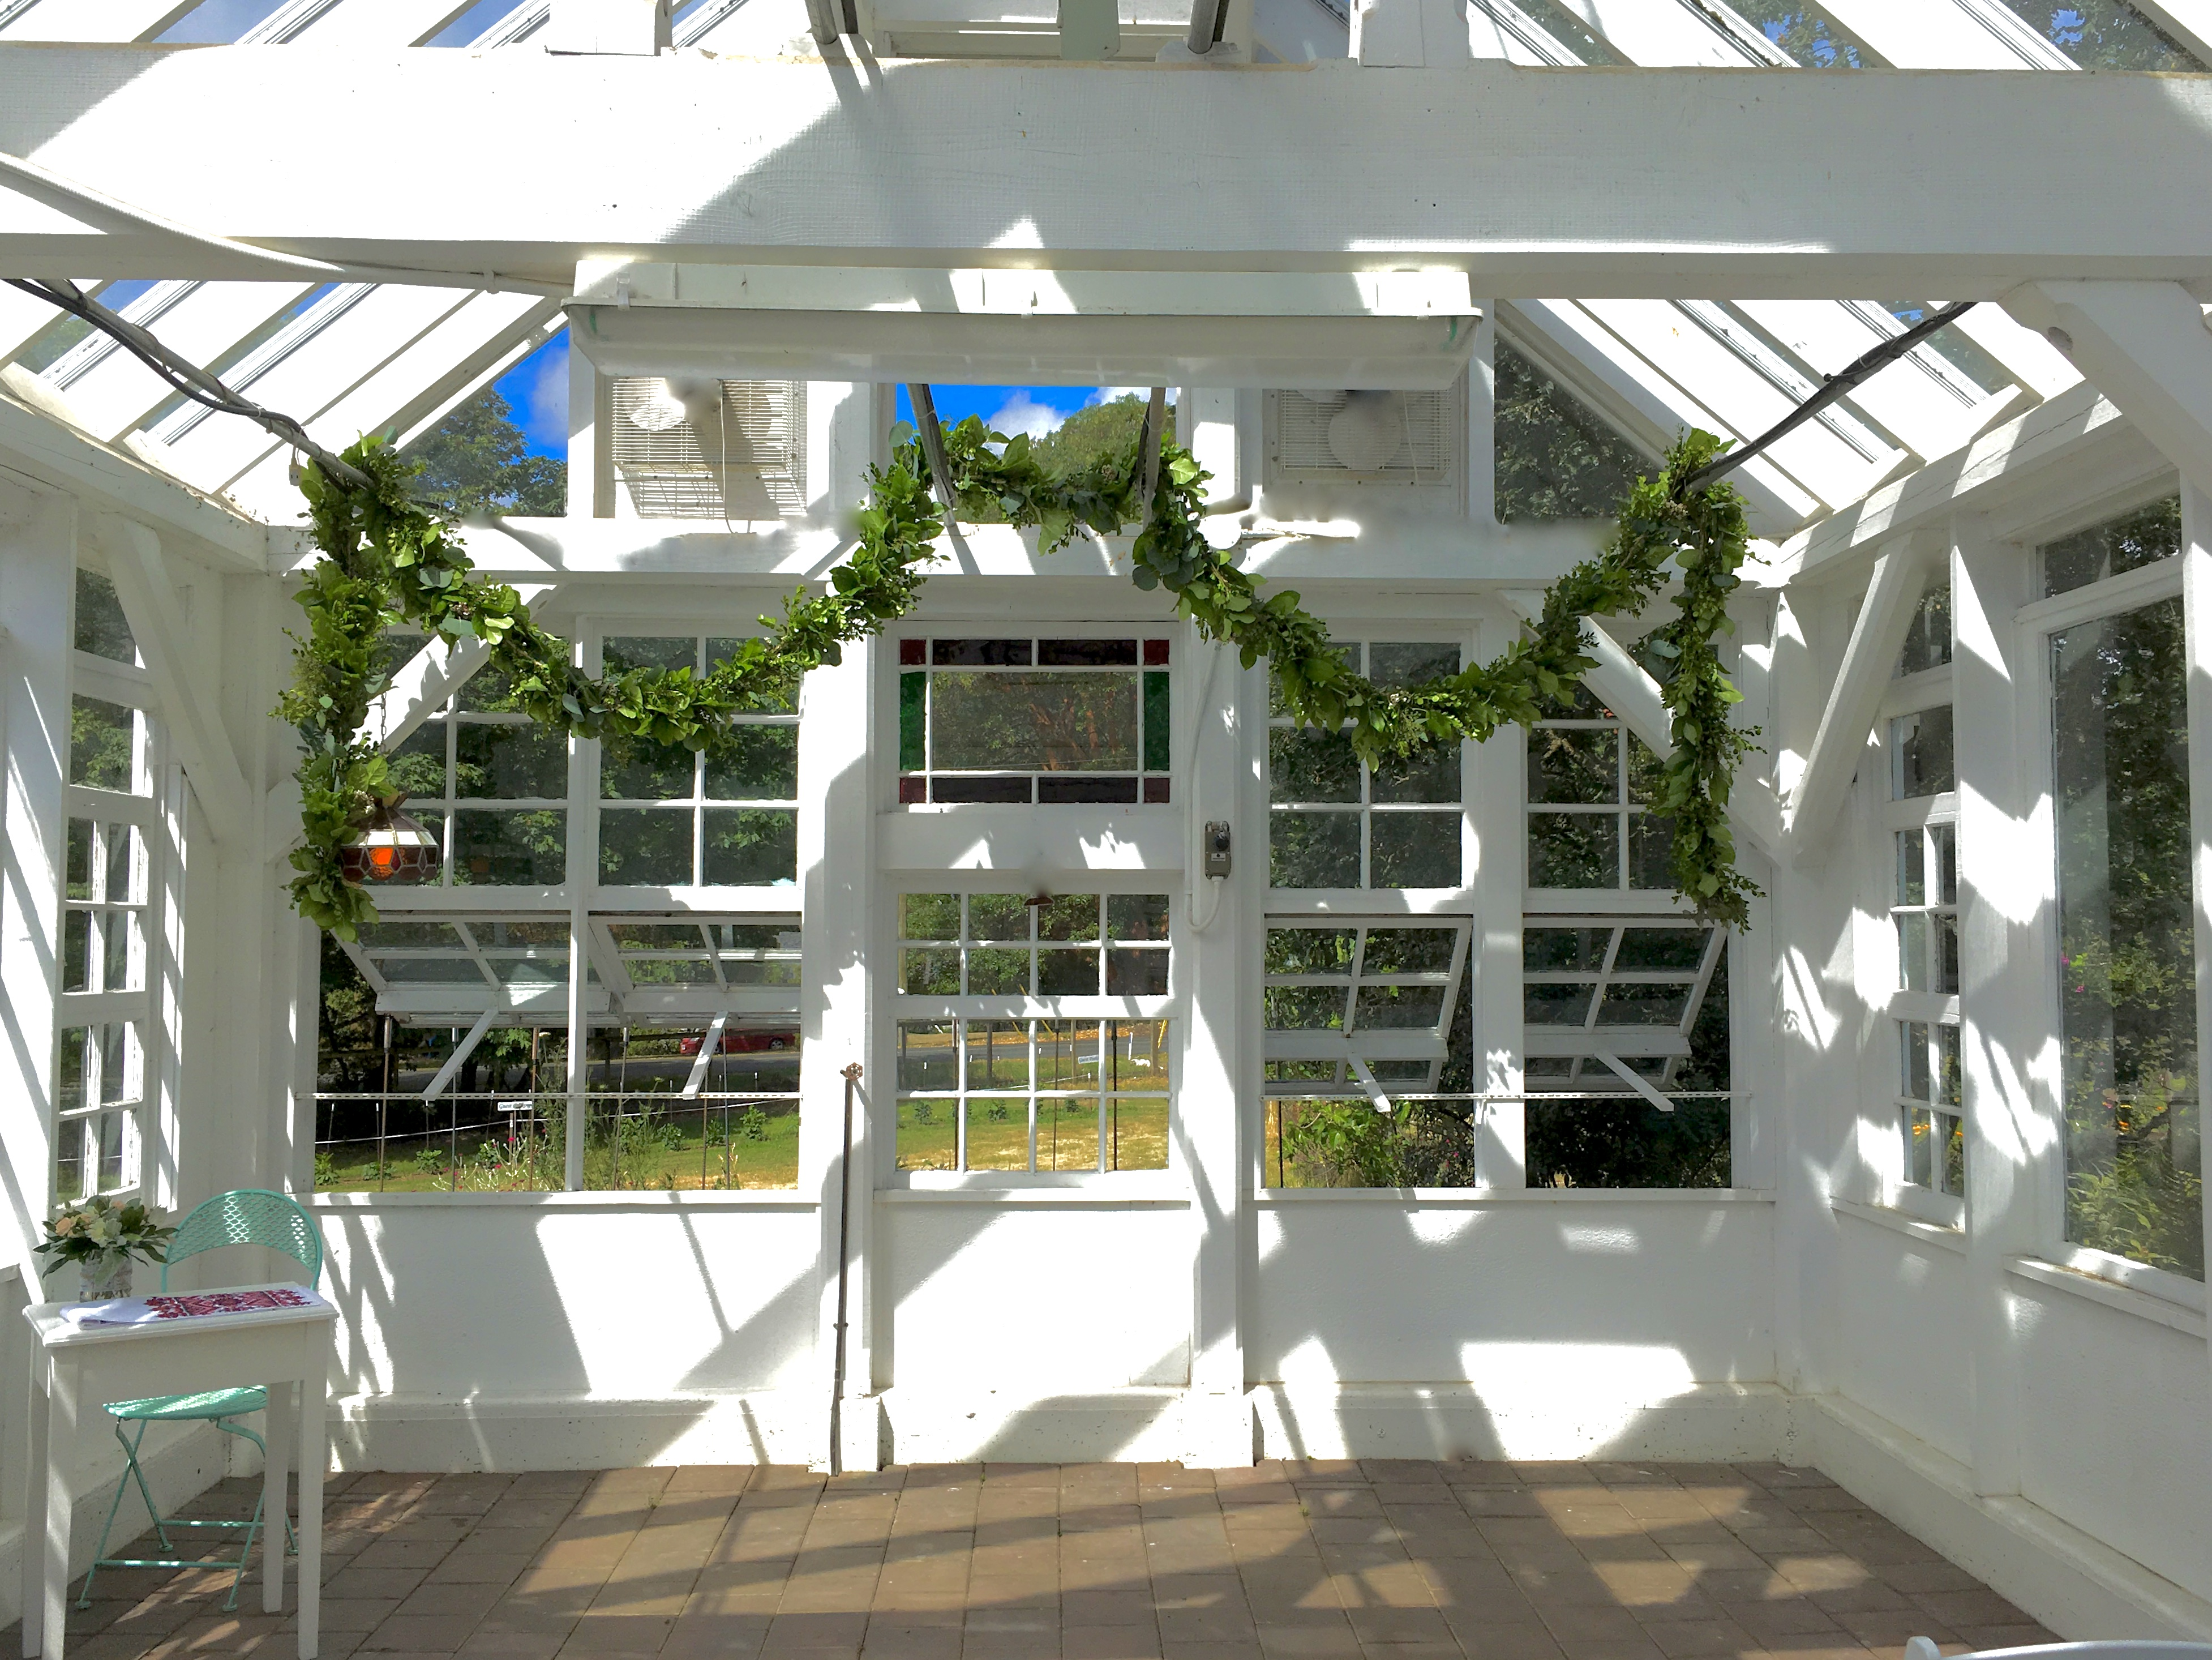 Starling Lane's greenhouse decorated with fresh garland